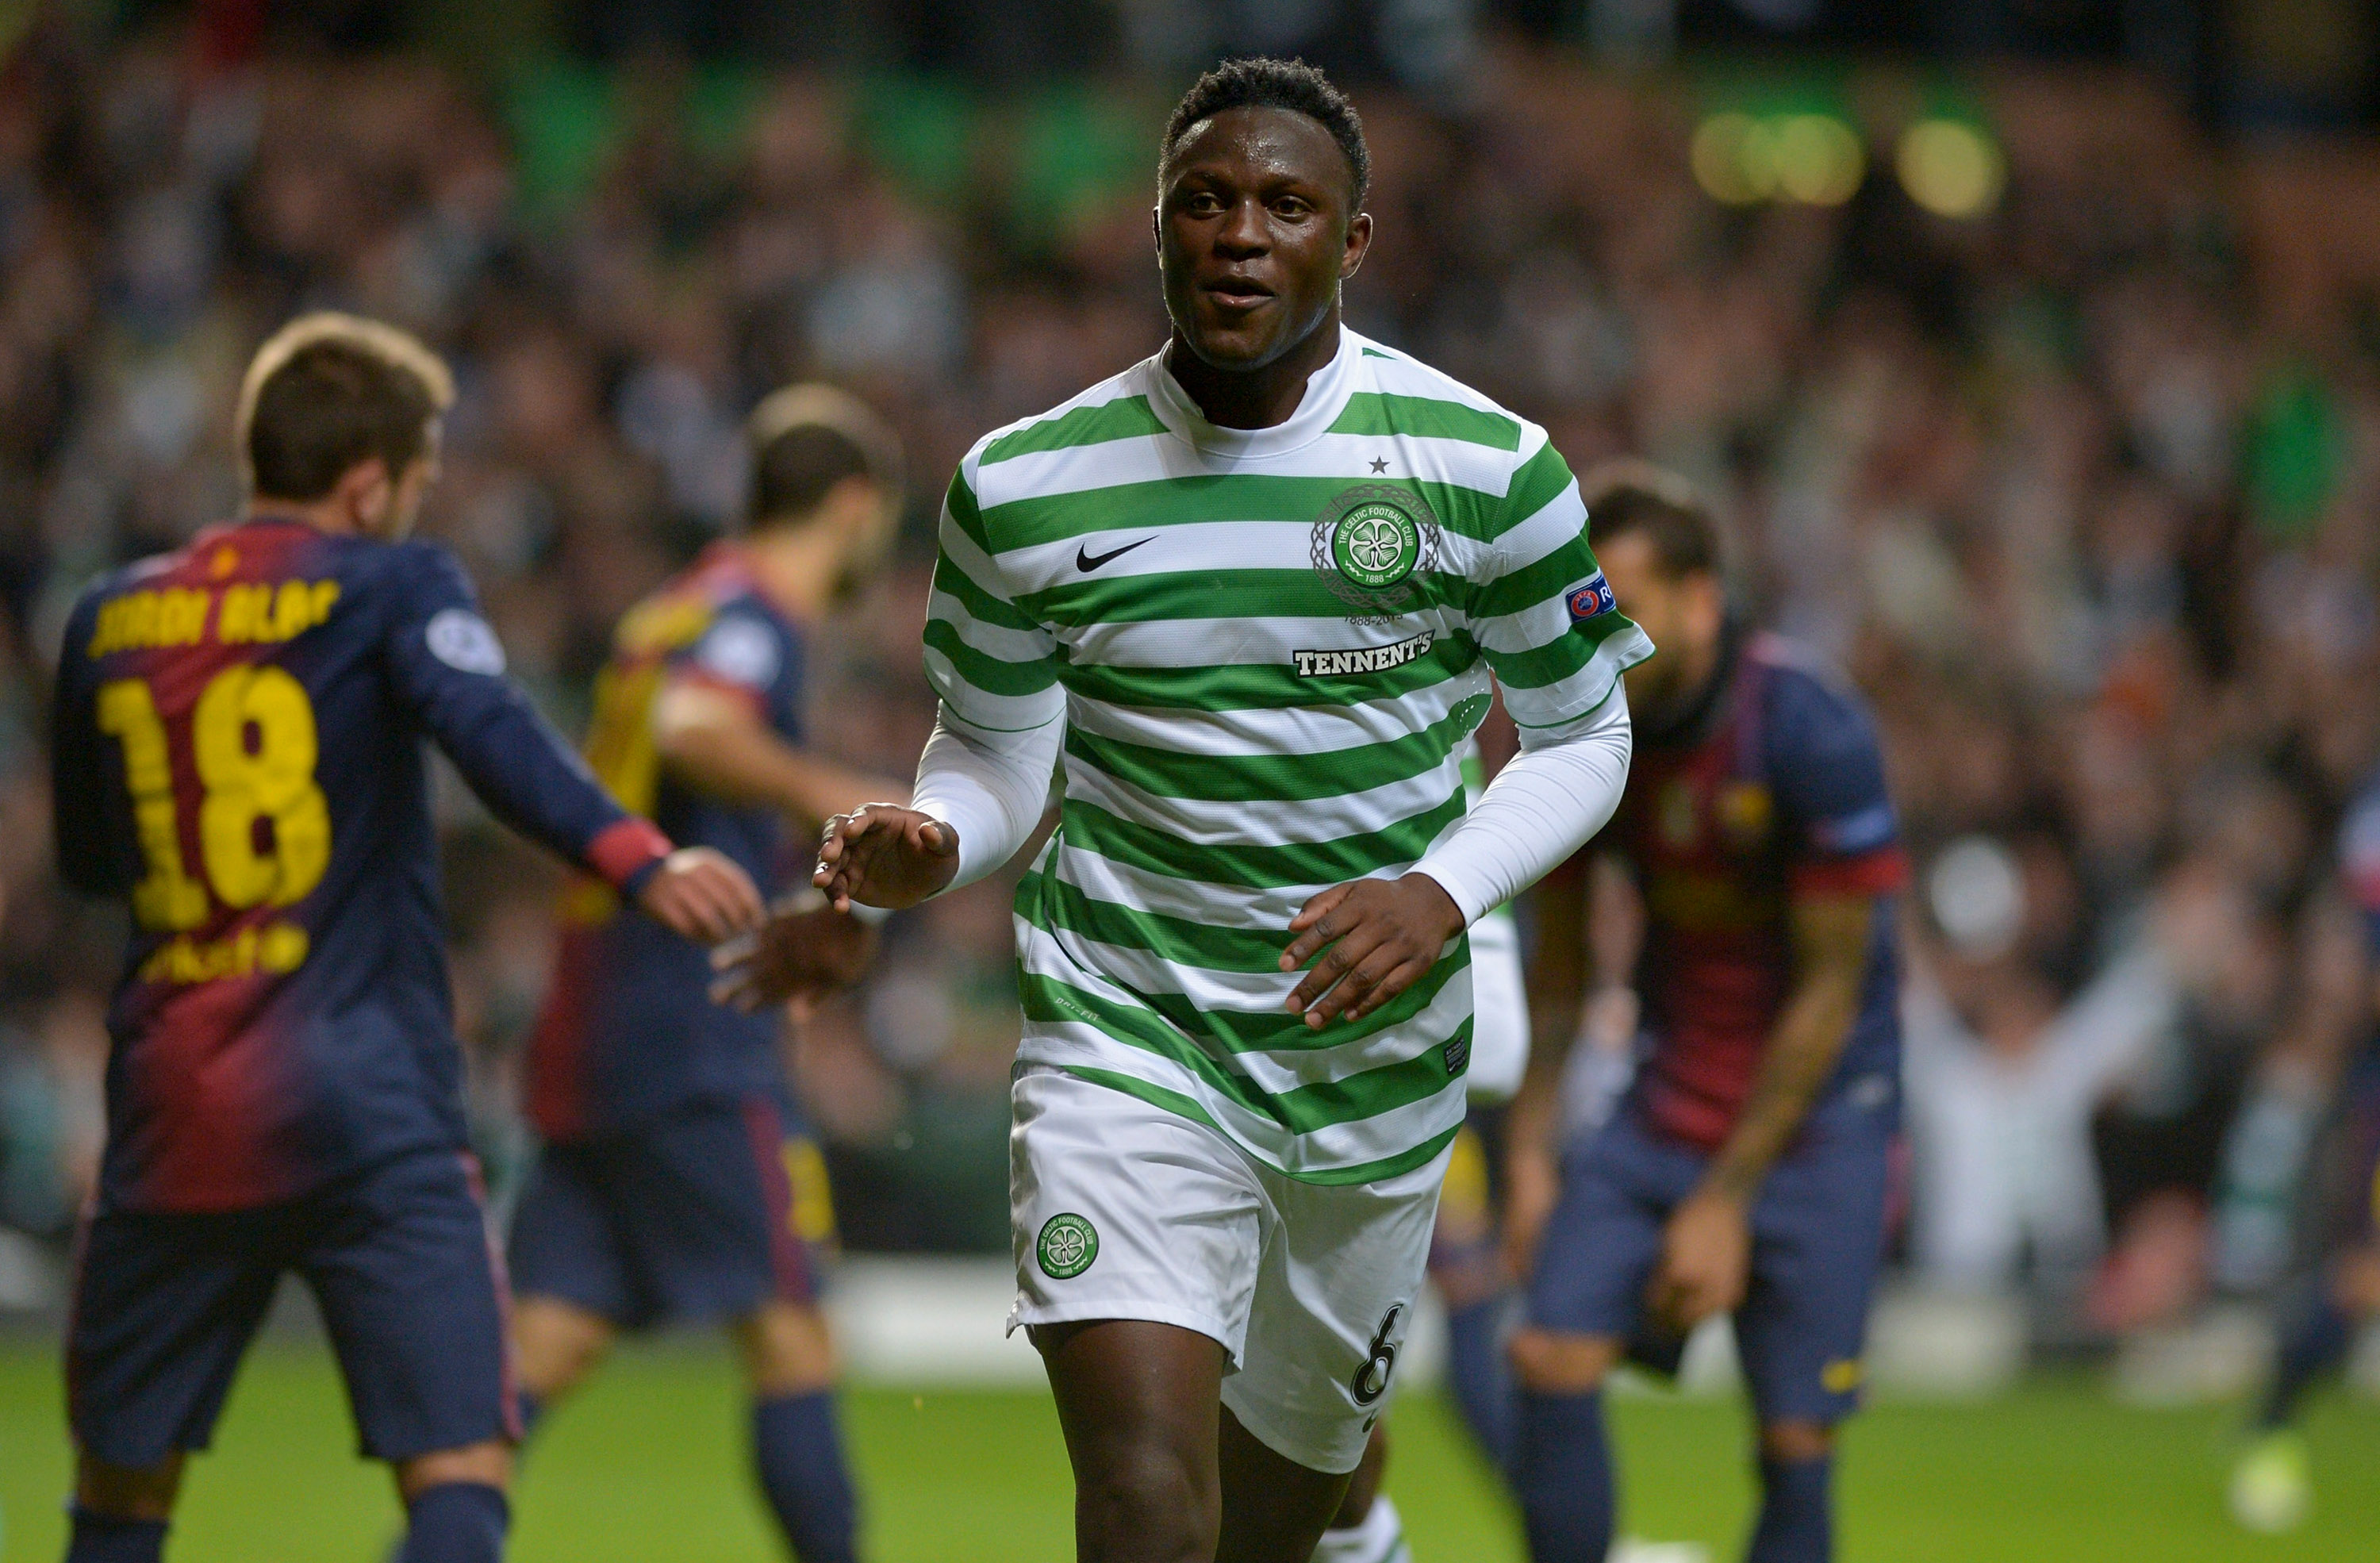 Manager discusses possibility of blockbuster Celtic return for 28-year-old